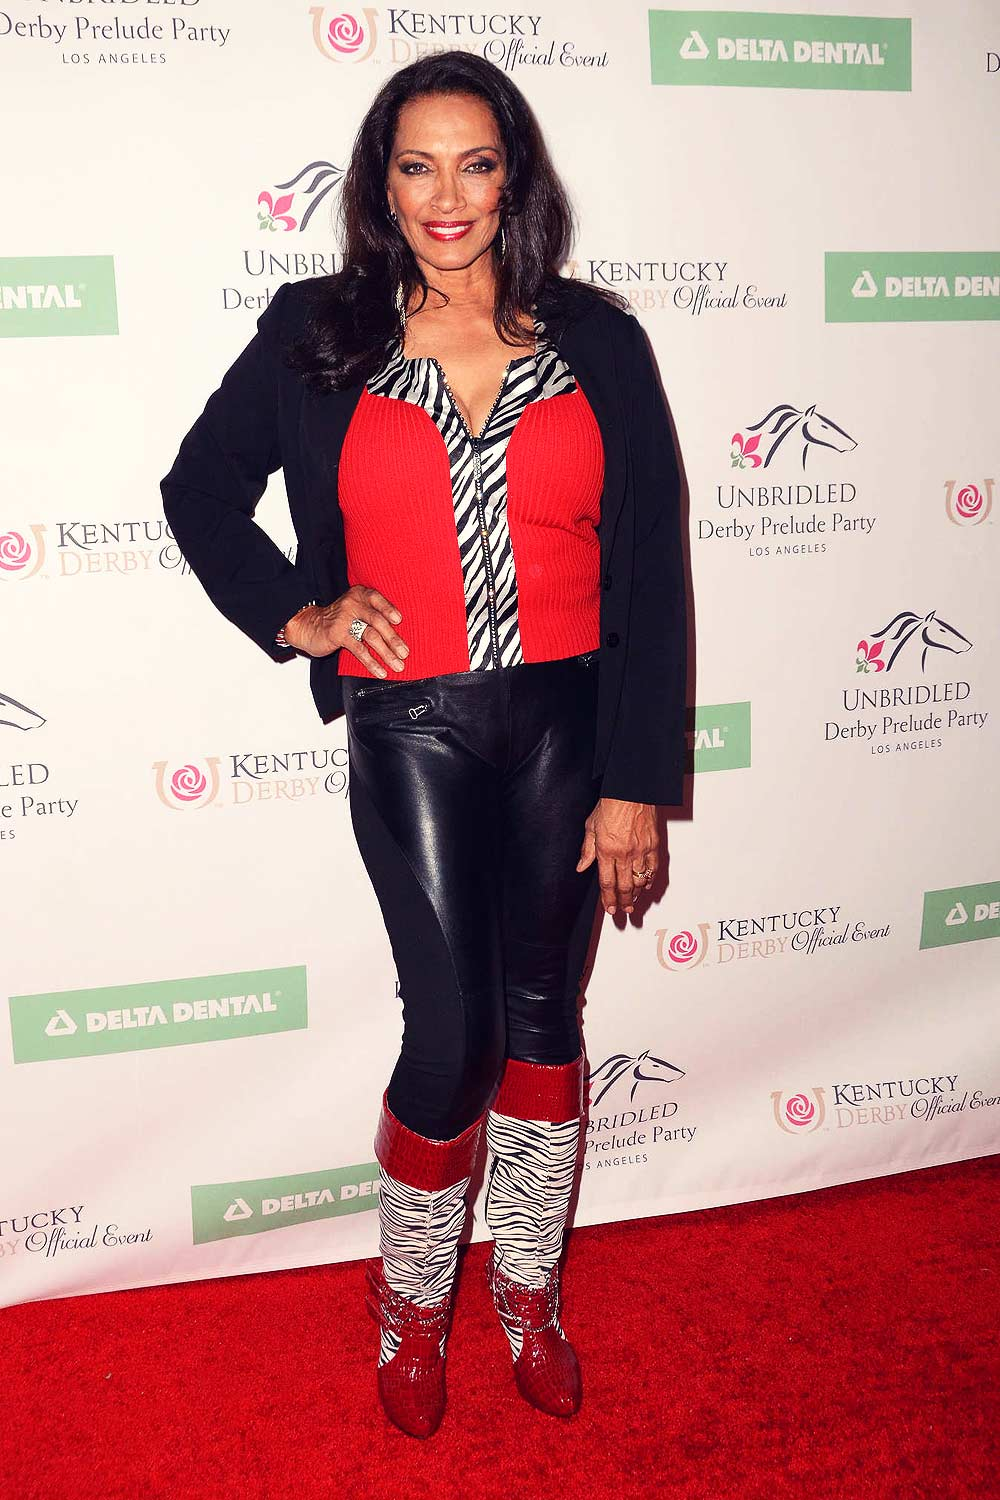 Kathleen Bradley attends 7th Annual Unbridled Eve Derby Prelude Party